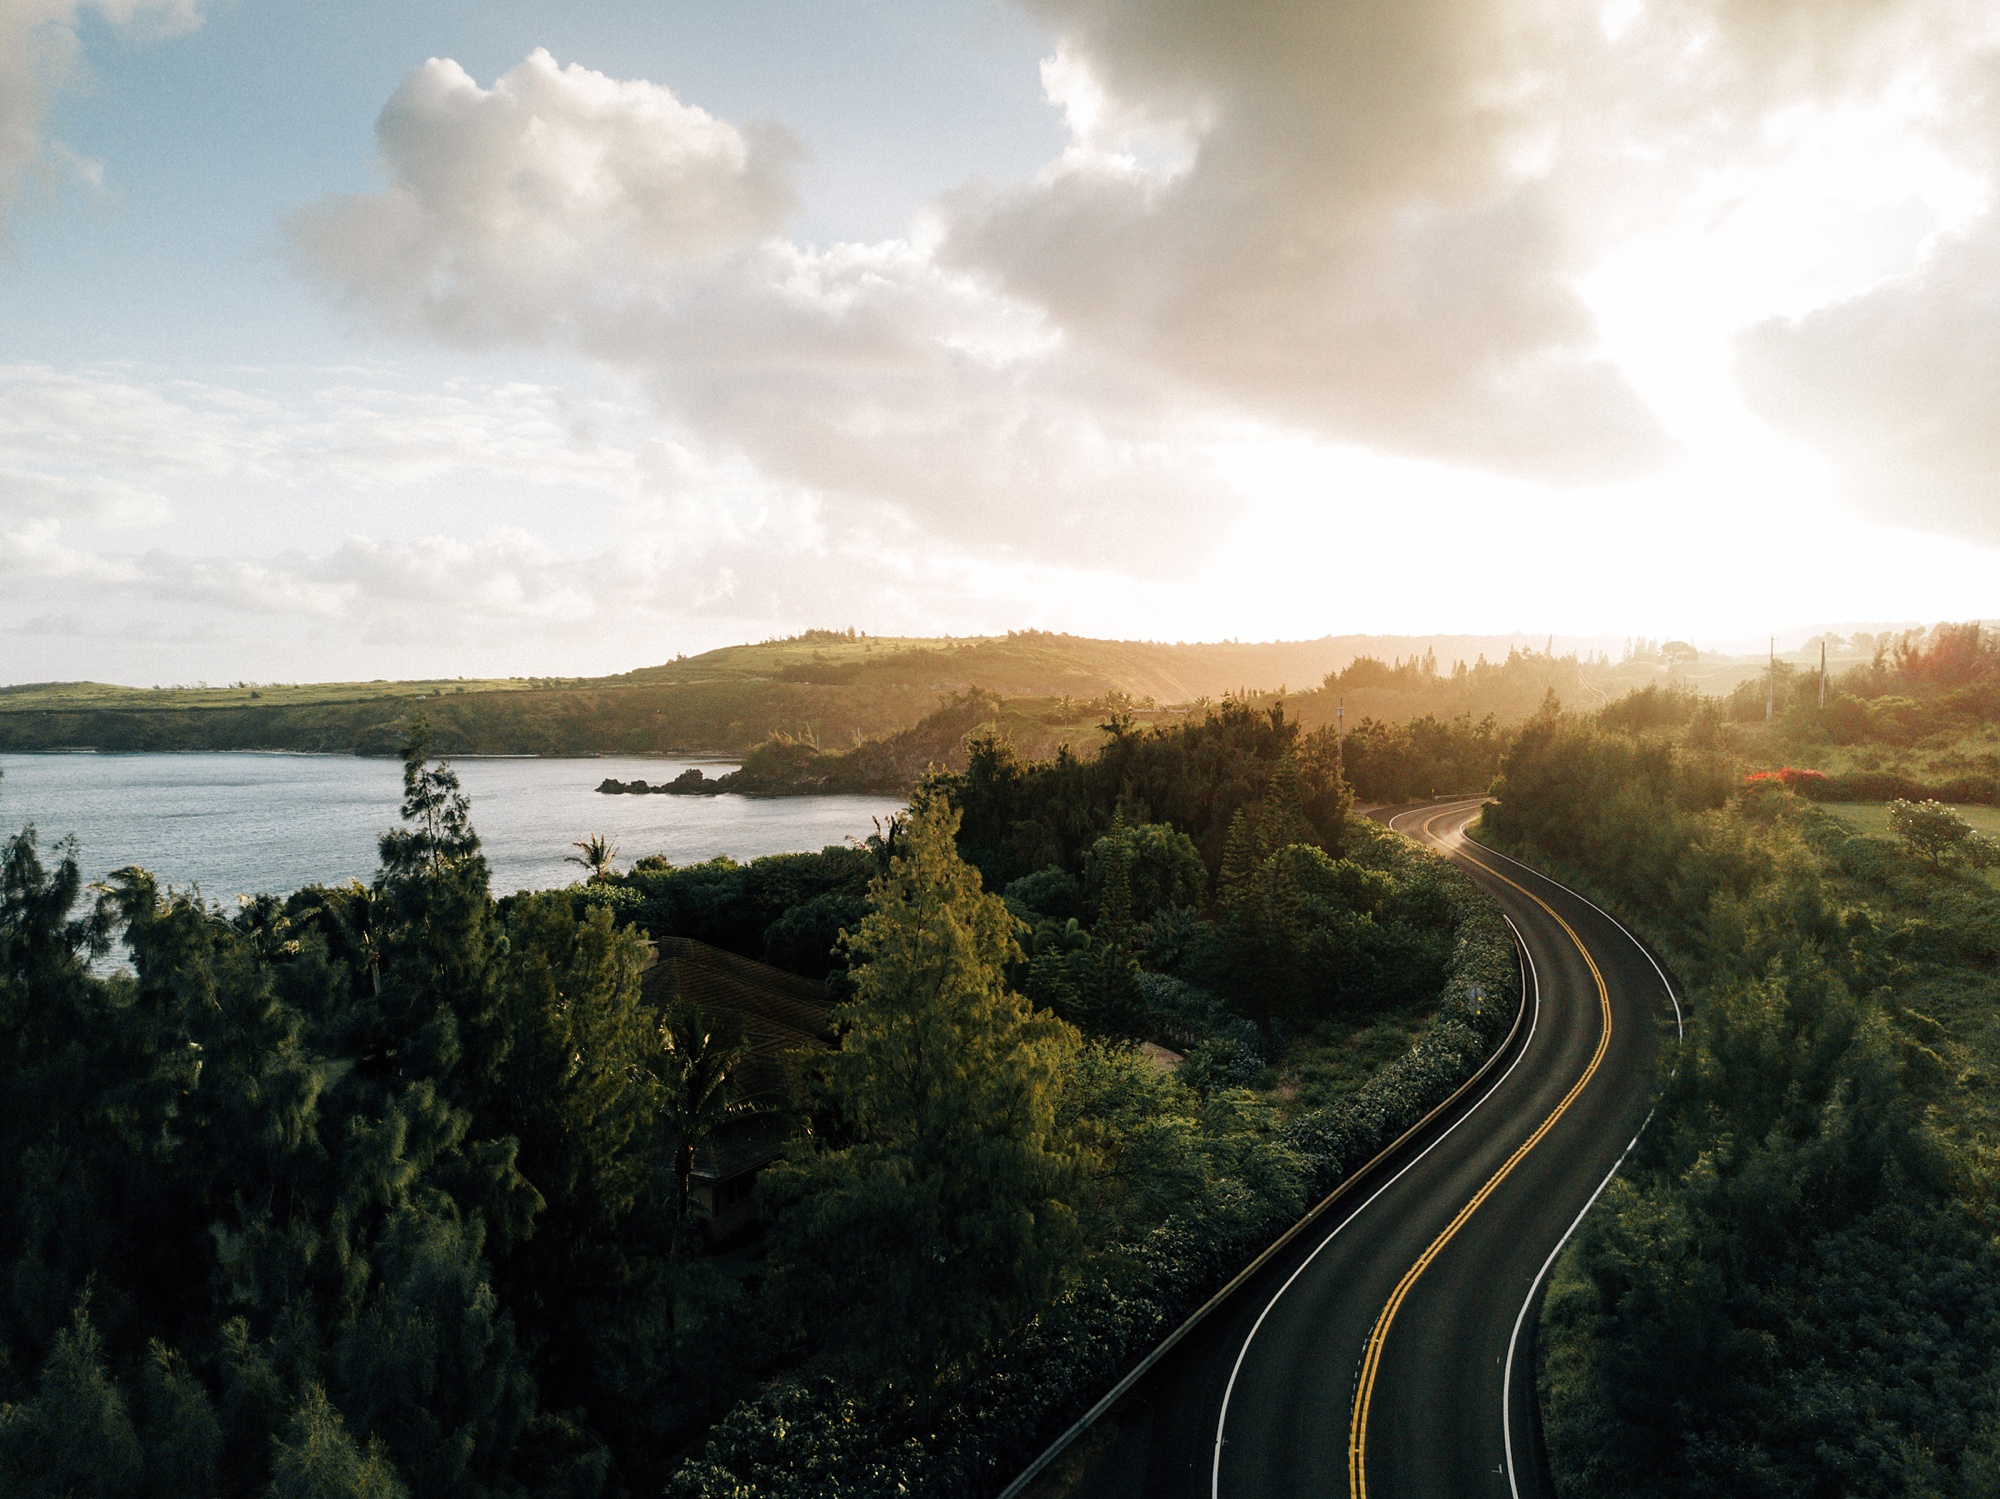 MAUI brilliantly captured in photos